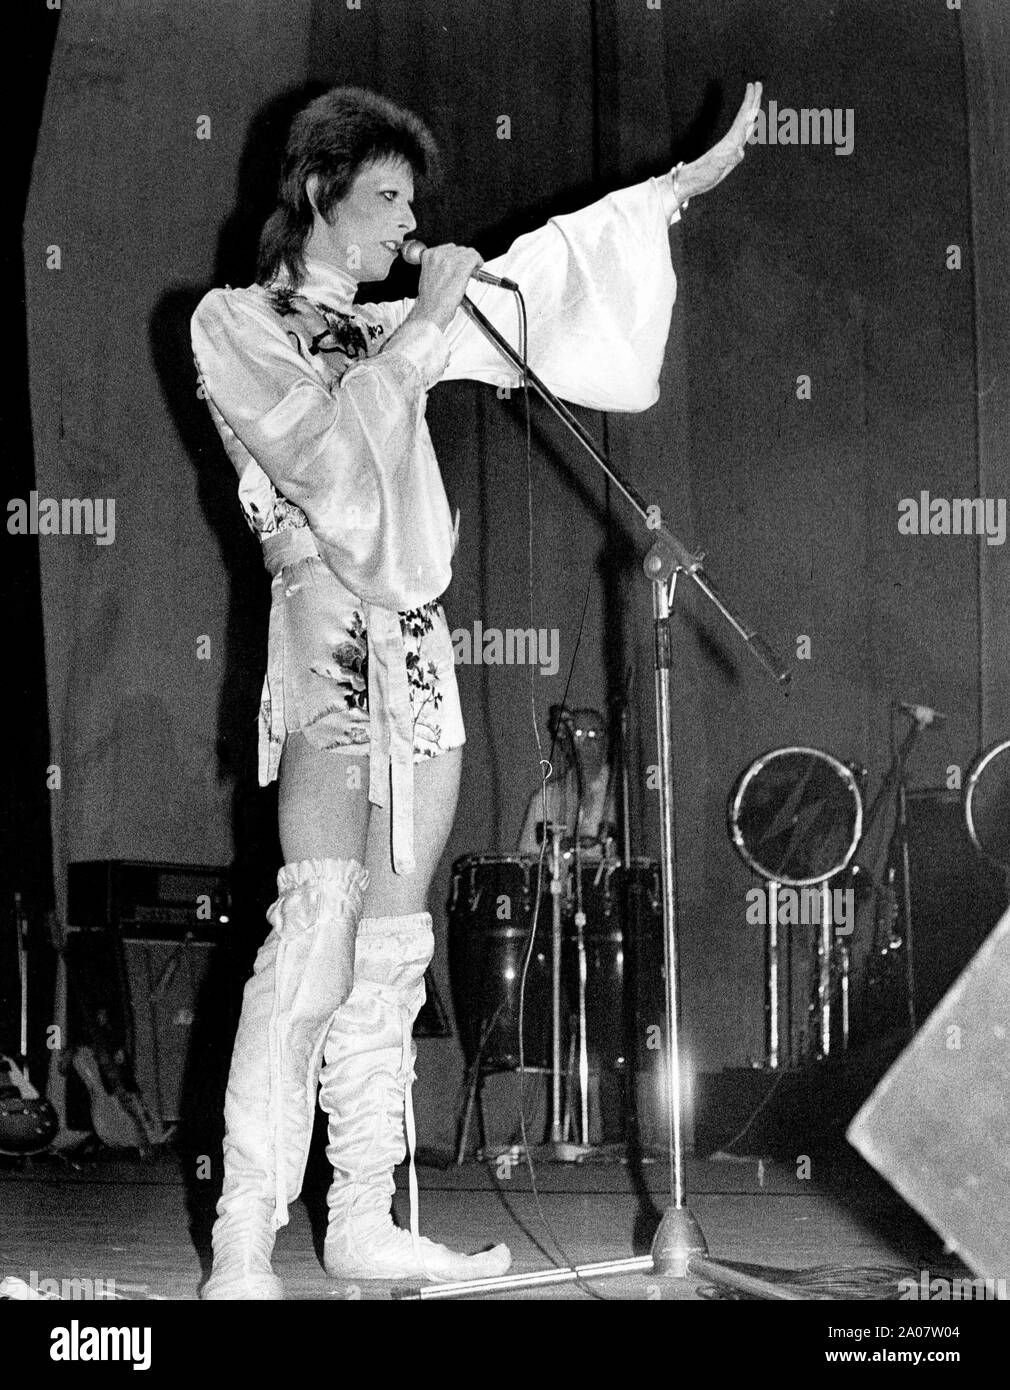 July 4, 1973 - London, England, United Kingdom - Pop star DAVID BOWIE raises his hand toward the crowd while performing live on stage at his final concert at the Odeon Theatre. He proclaimed to fans at the end, that 'this is the concert I will never forget, as it's the last I'll ever do.'  (Credit Image: © Keystone Press Agency/Keystone USA via ZUMAPRESS.com) Stock Photo